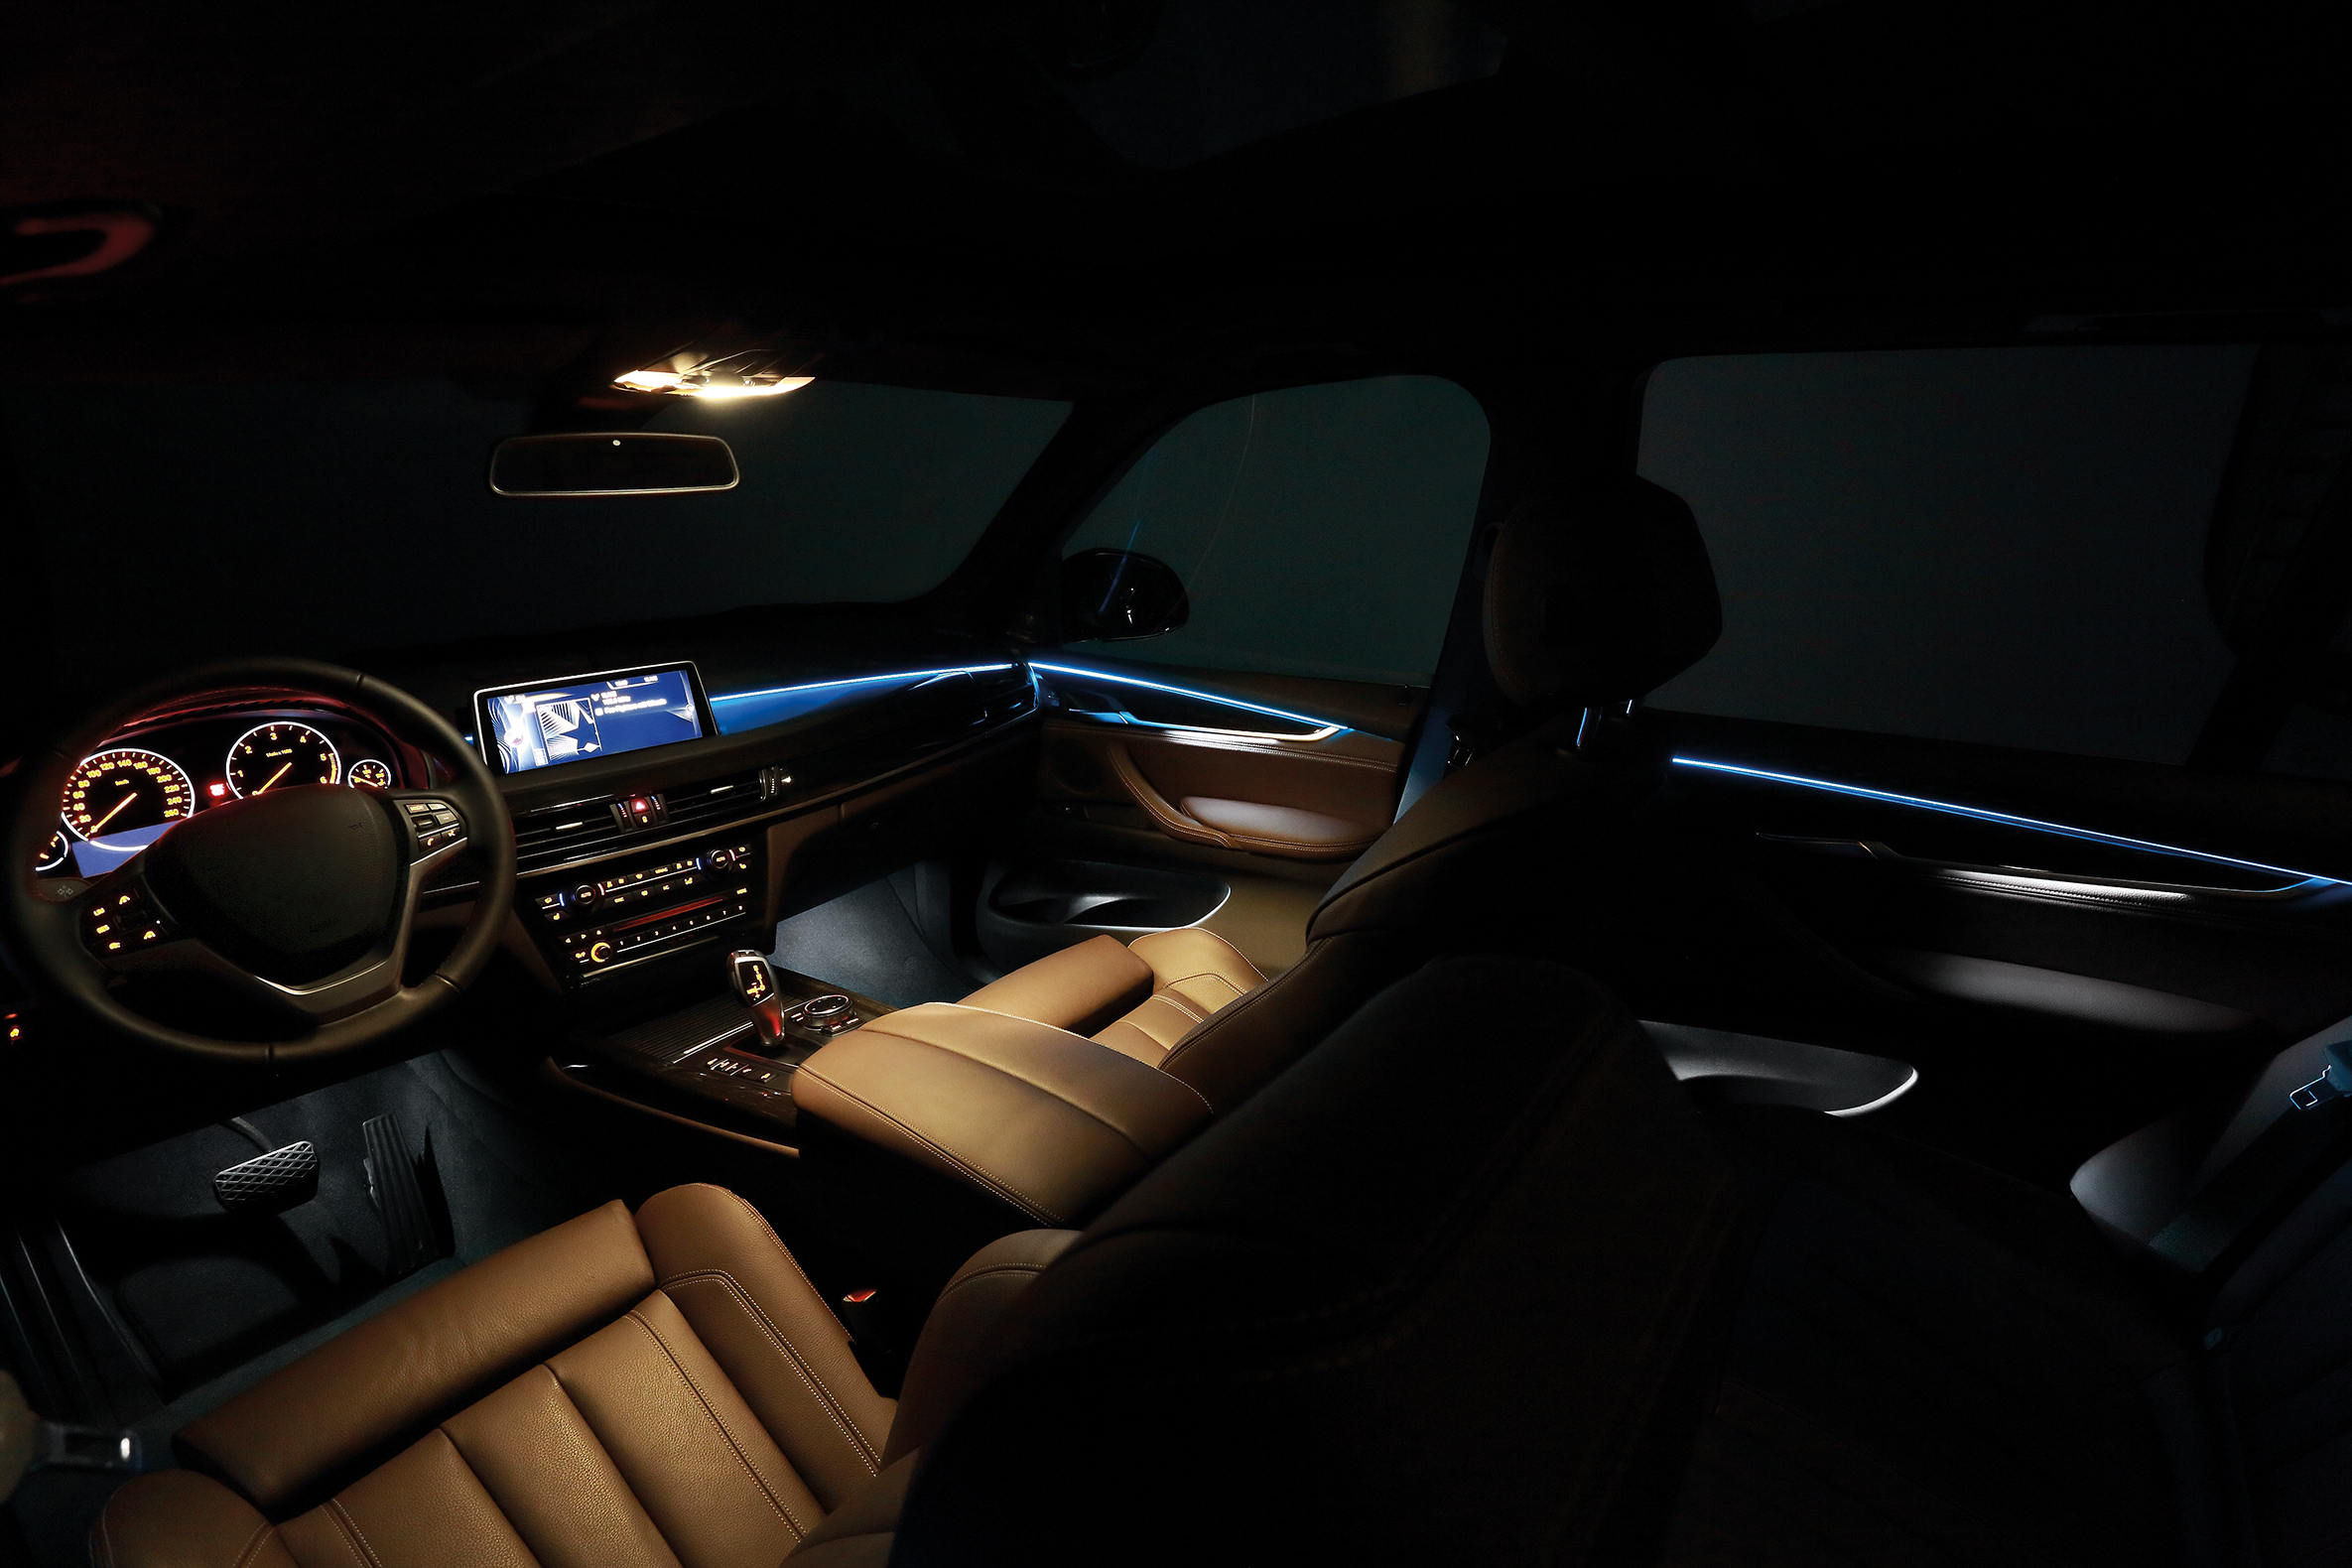 what do you guys think about ambient interior lighting ambient interior lighting